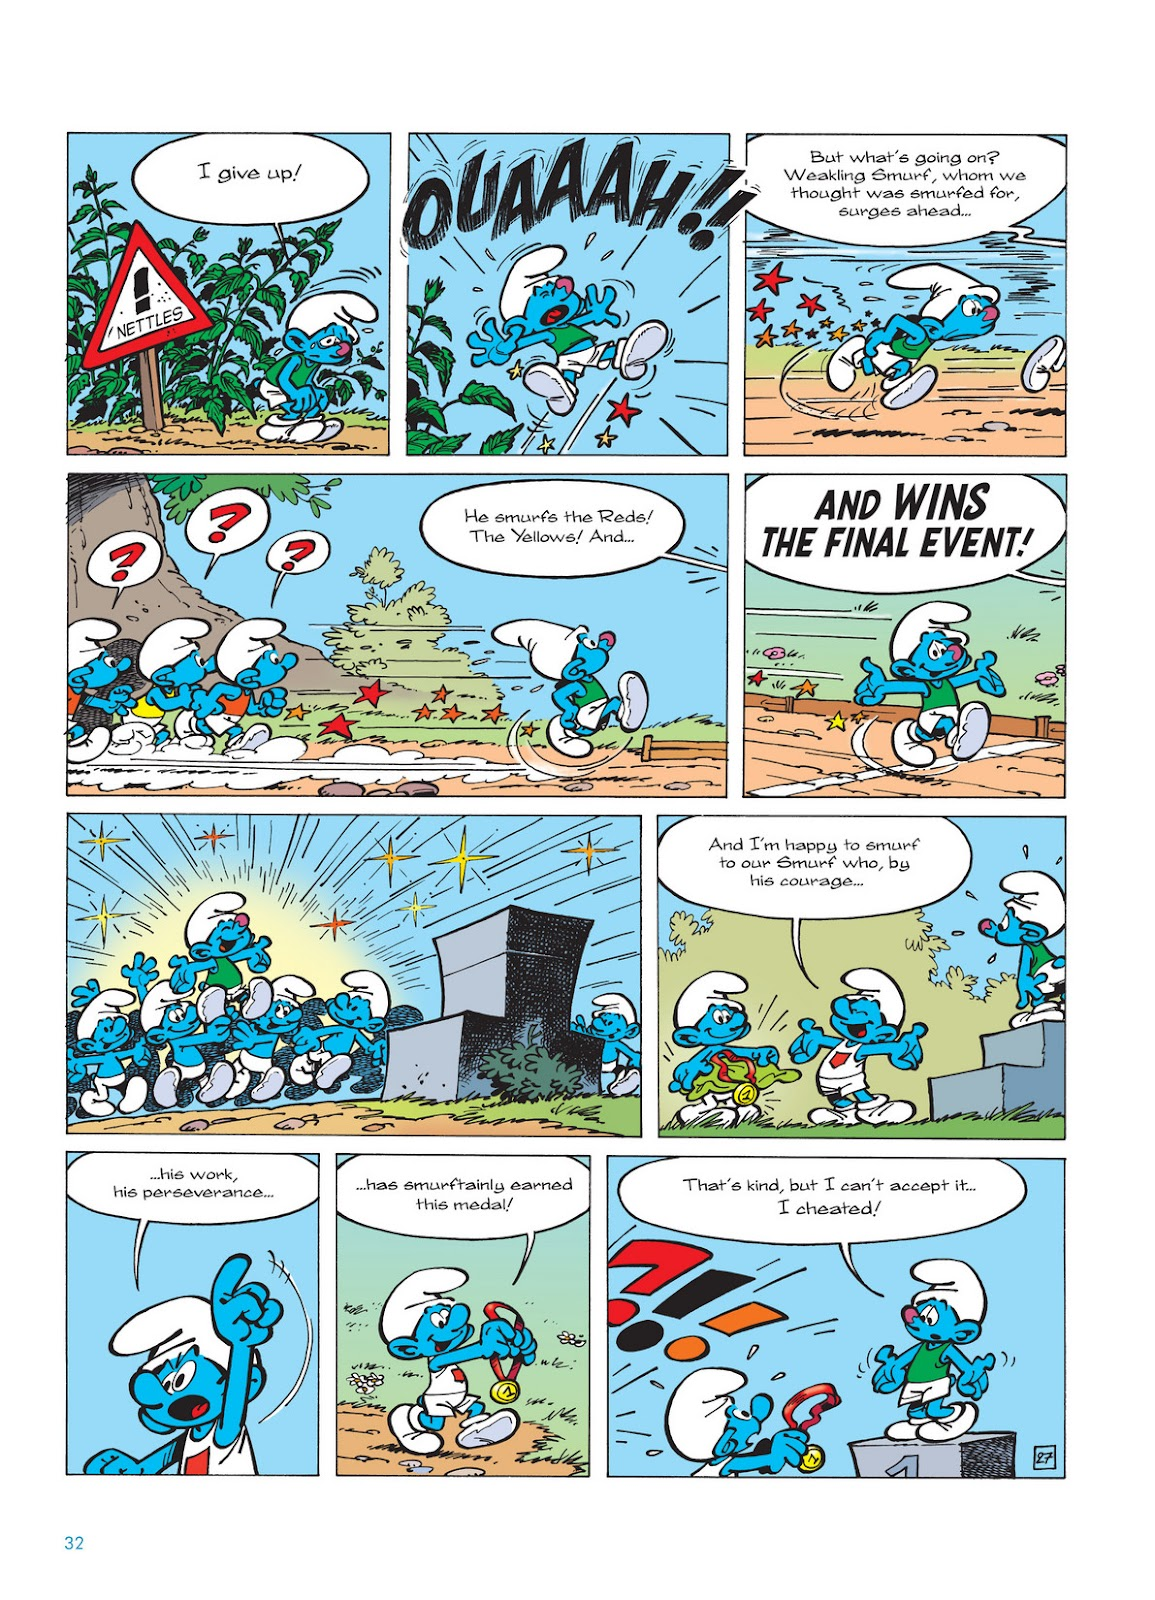 Read online The Smurfs comic -  Issue #11 - 32